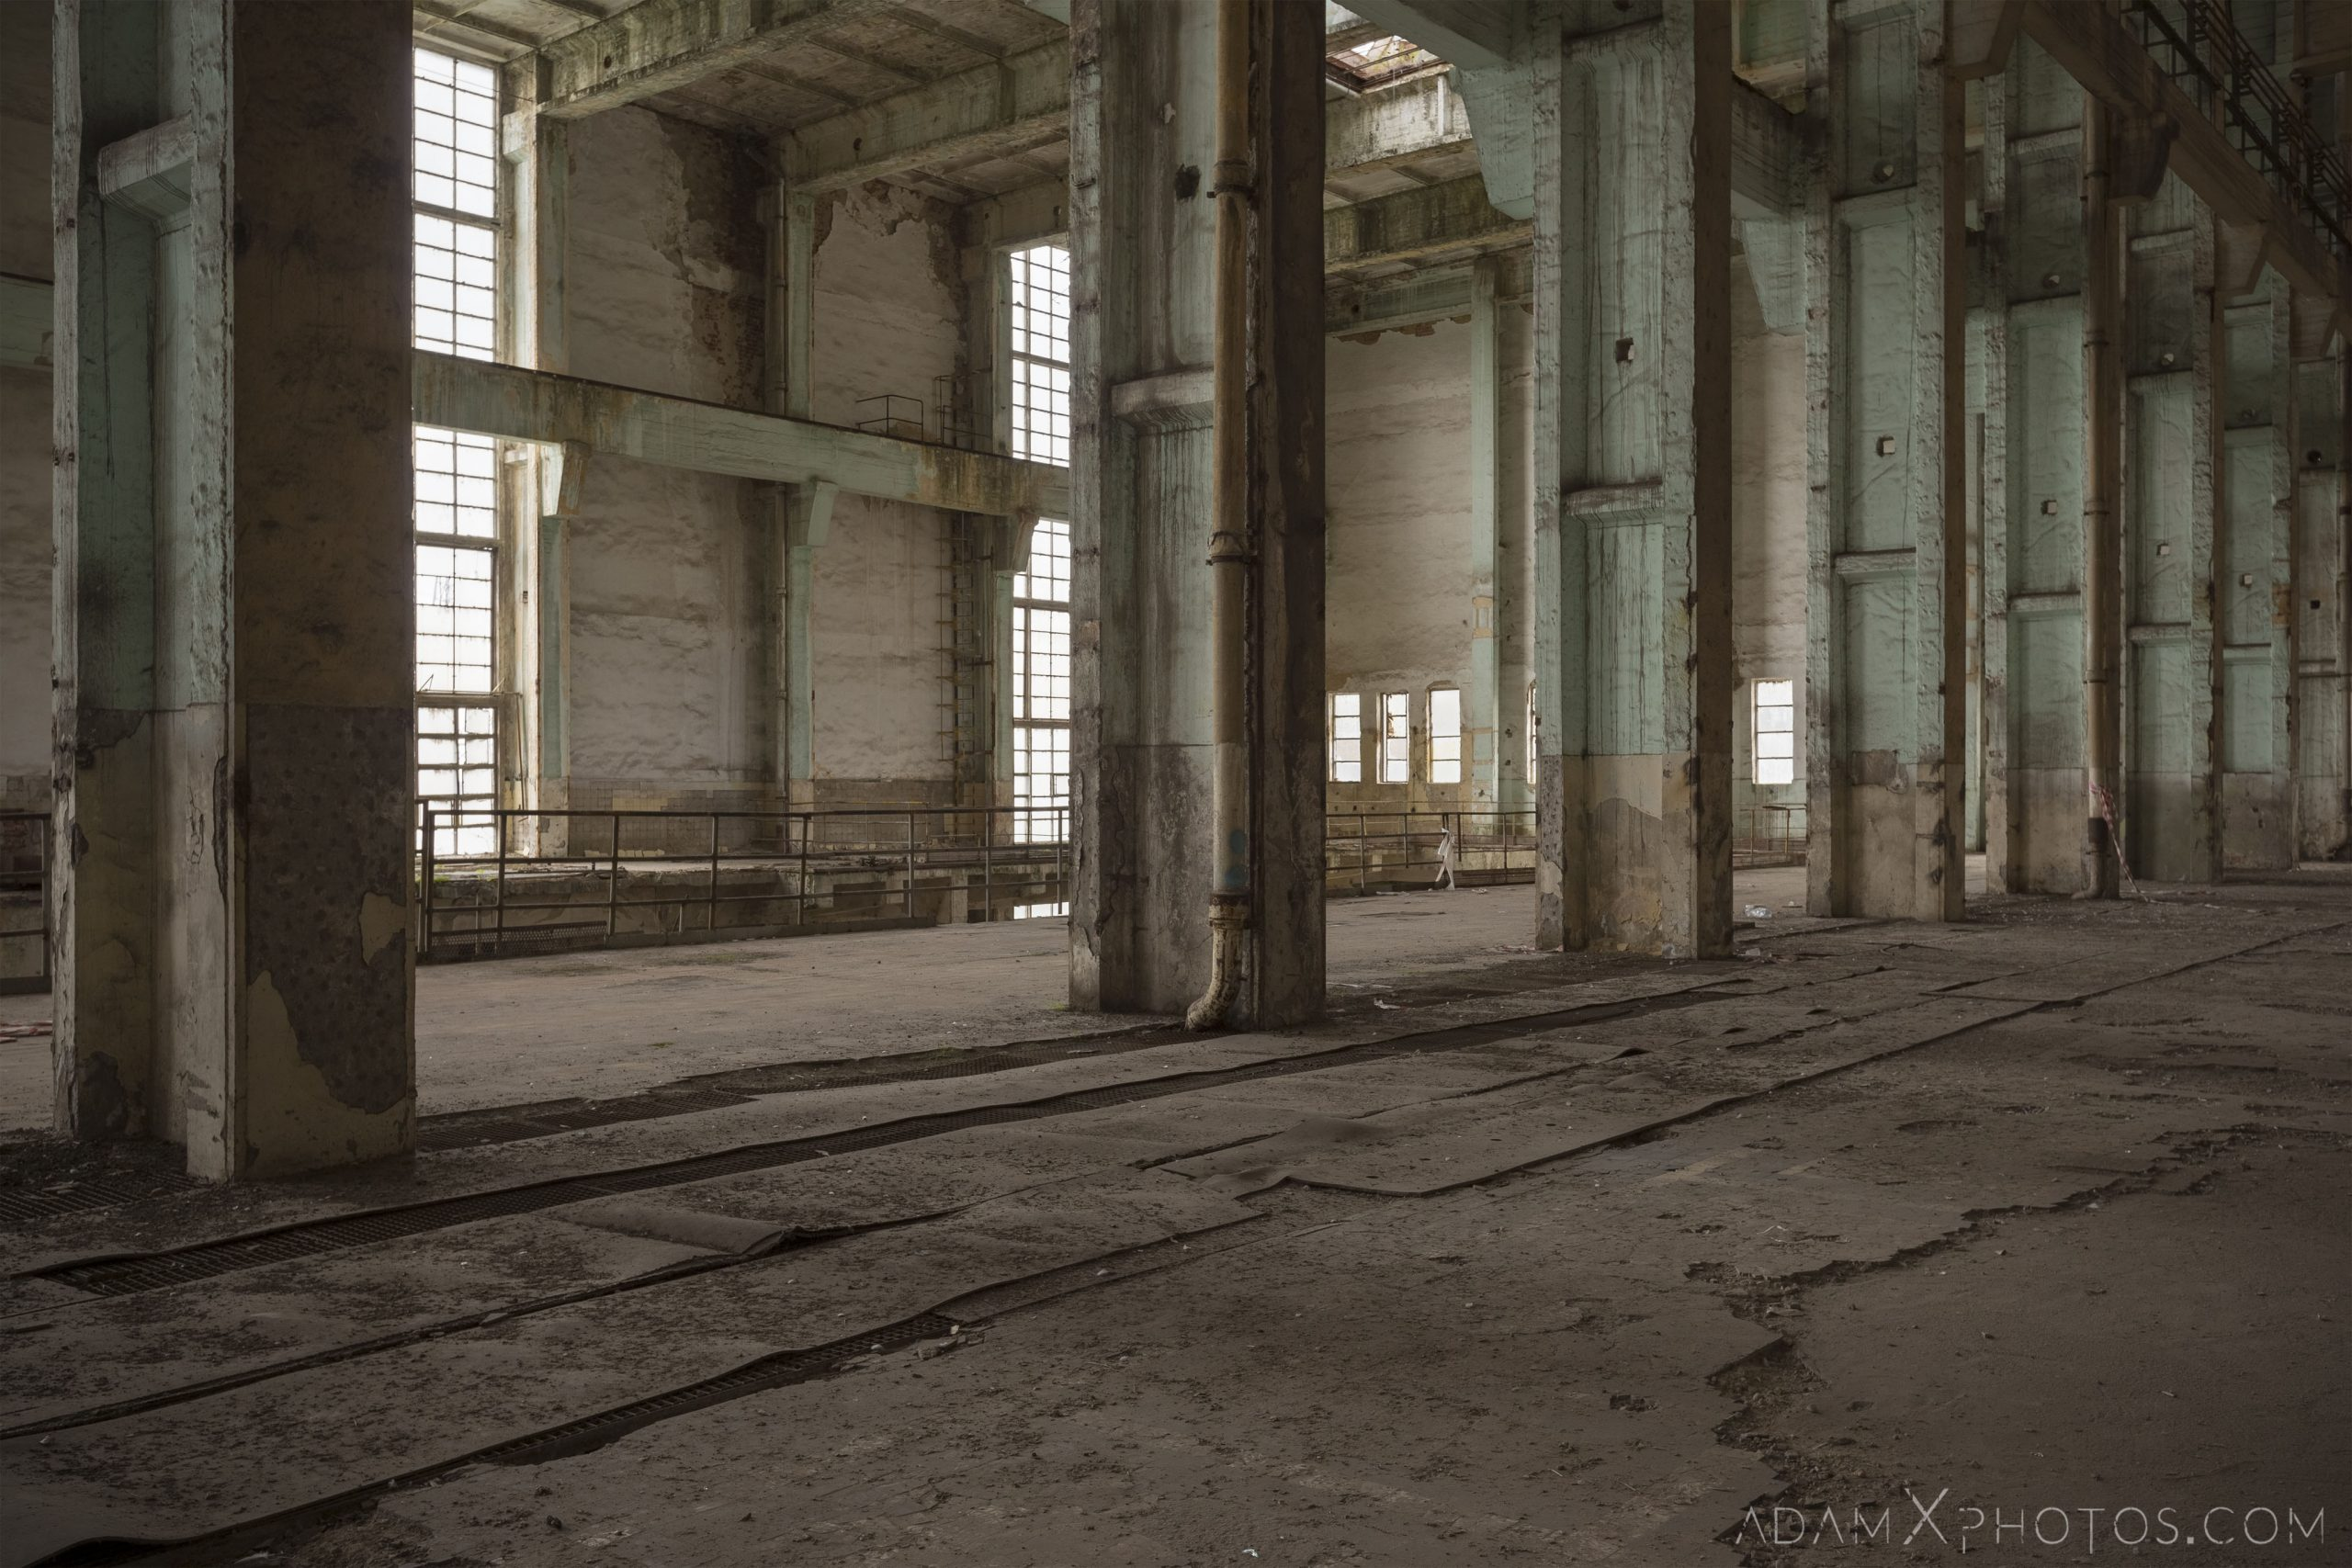 empty stripped turbine hall industry industrial rusty rusting Bladerunner Blade Runner 2049 Powerplant Inota Shephard's Power Plant Hungary Adam X Urbex Urban Exploration Access 2018 Abandoned decay ruins lost forgotten derelict location creepy haunting eerie security